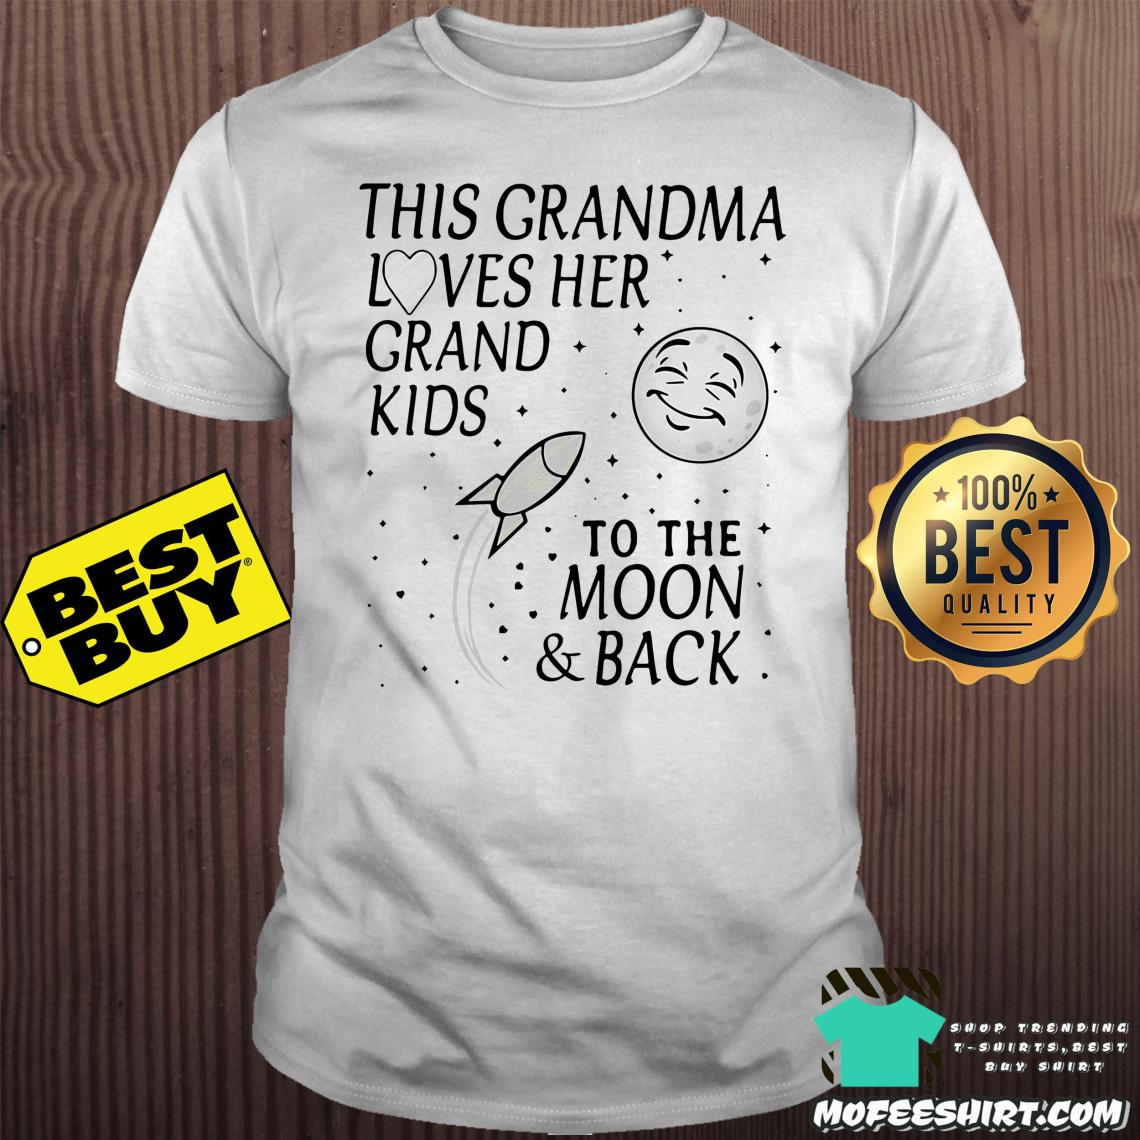 Download Sale 20% Official This grandma loves her grandkids to ...